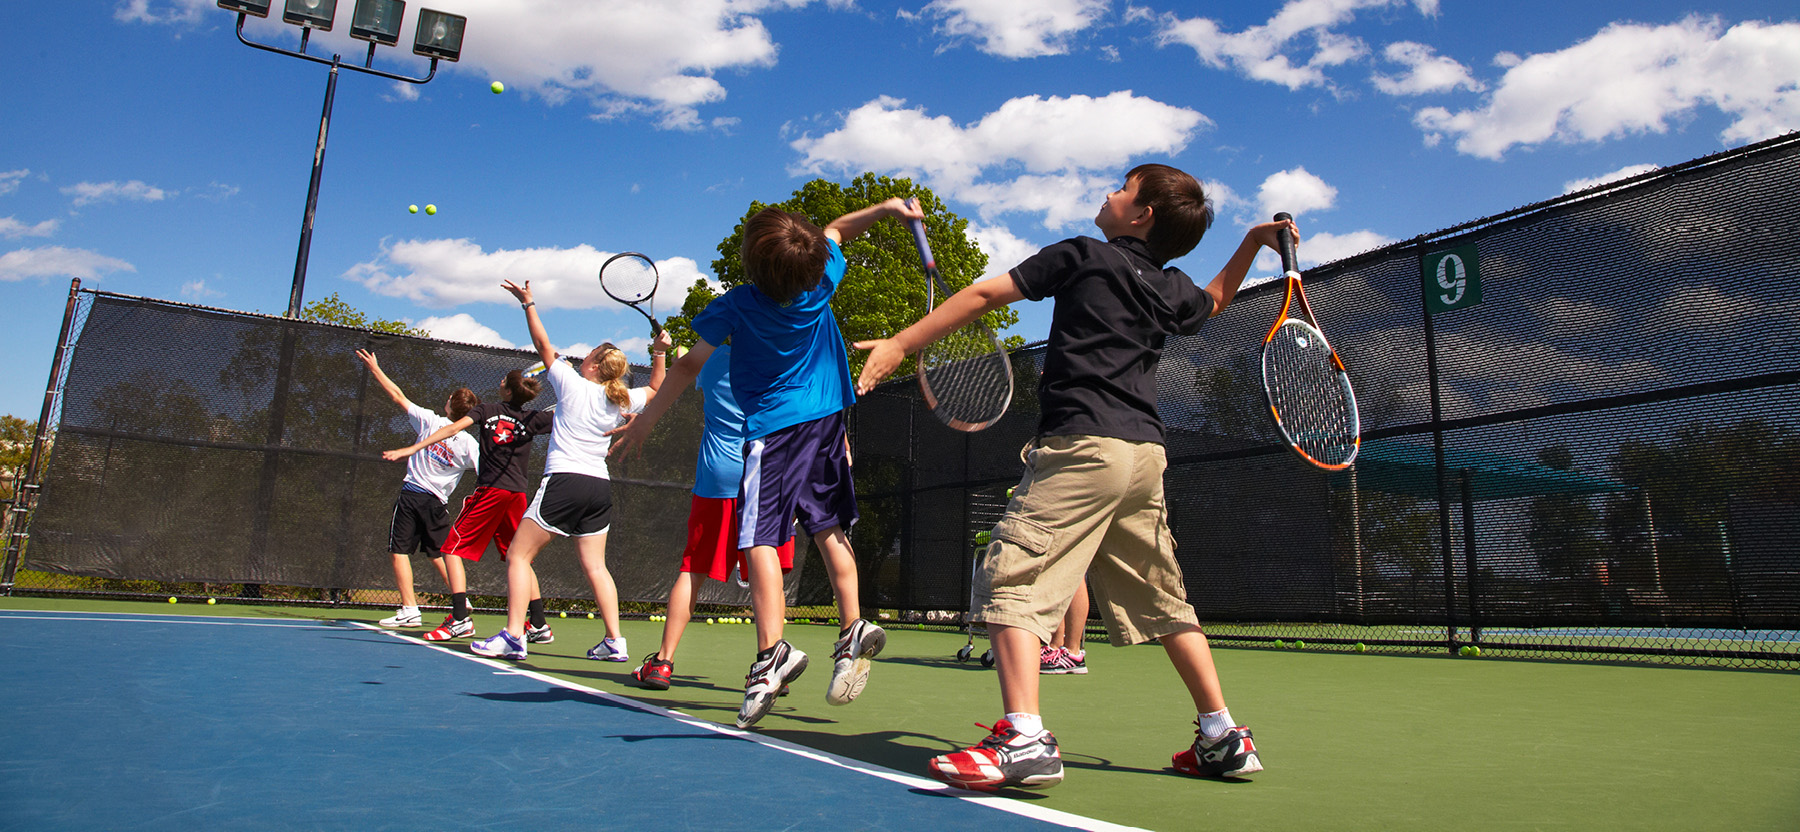 World of Tennis at The Hills of Lakeway